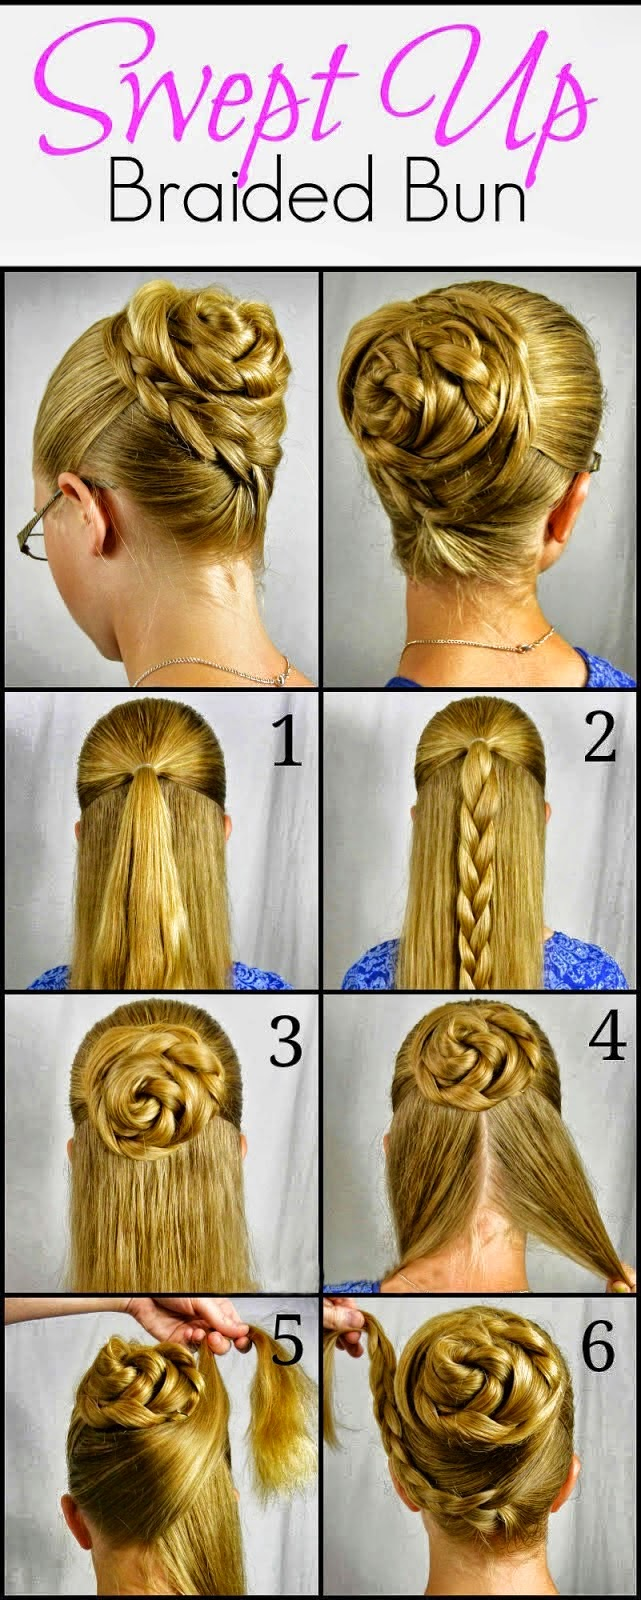 Swept Up Rose Braid Bun Hairstyle Step By Step Beauty And